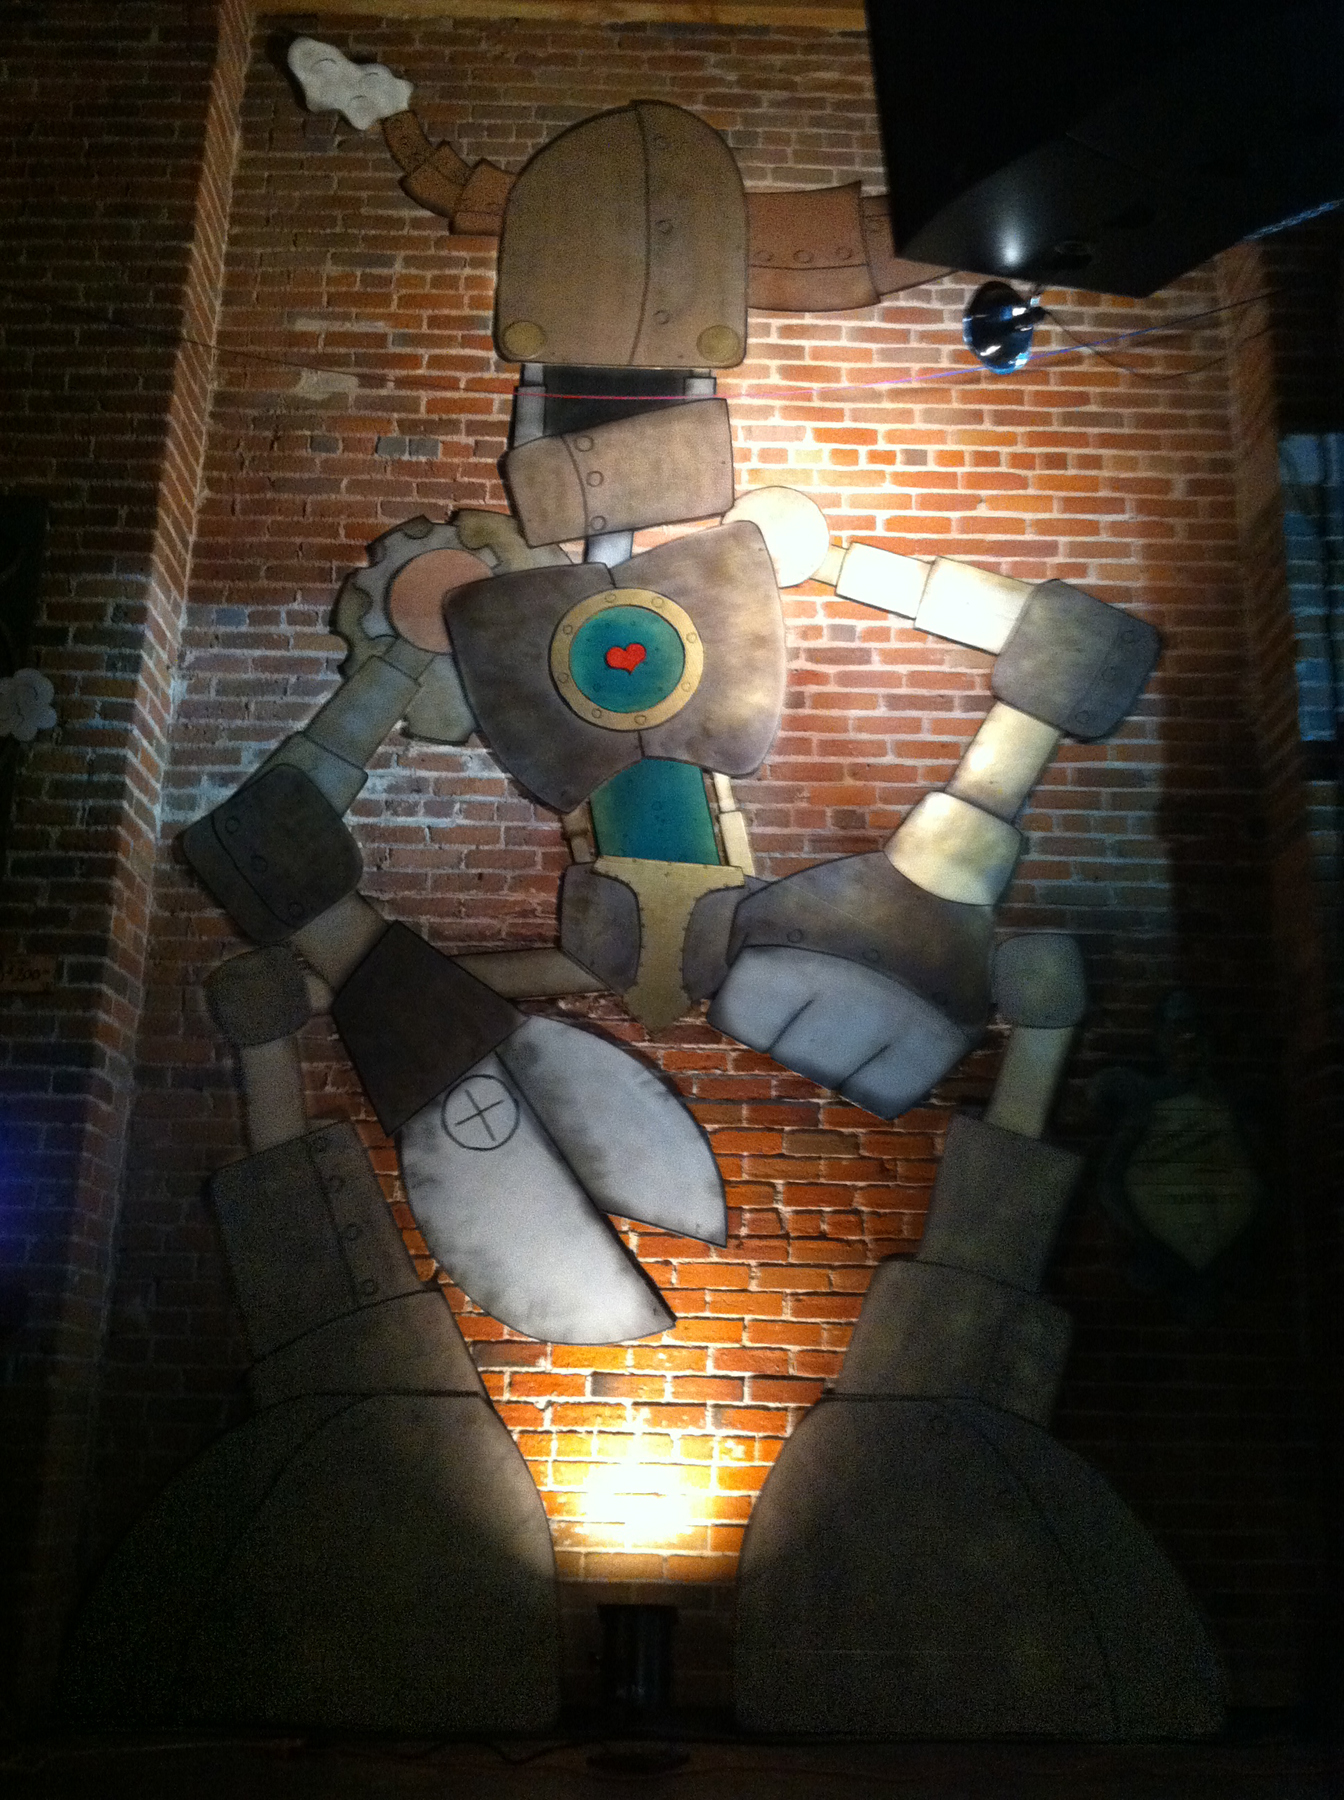 ColossalBot featured at Denver's Artopia in 2012. Image courtesy of The Impossible Winterbourne.